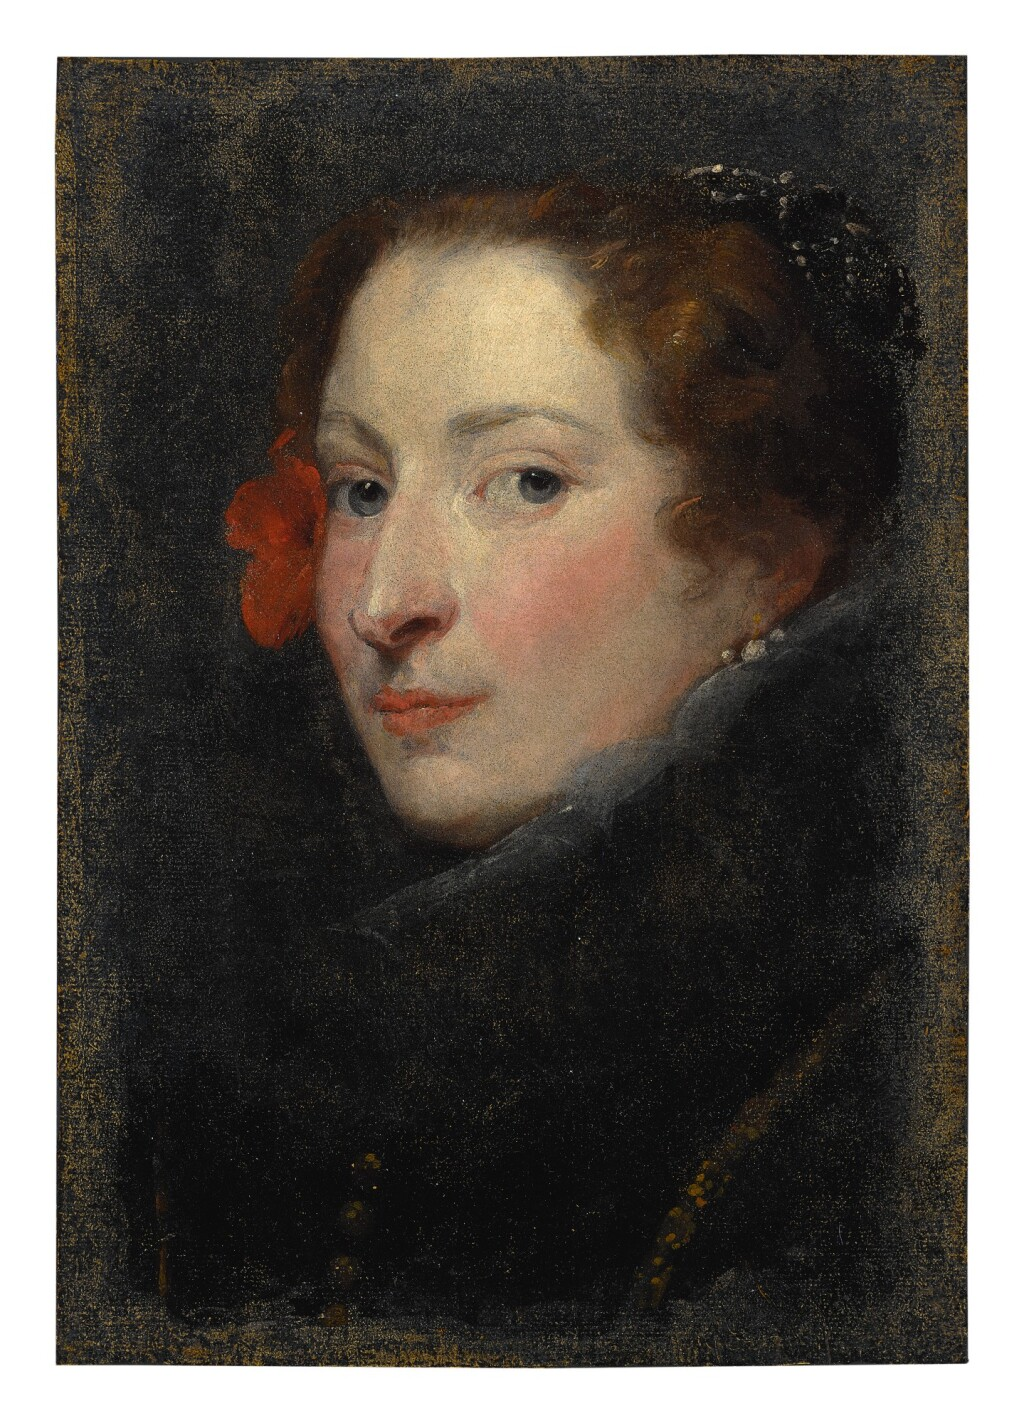 ATTRIBUTED TO SIR ANTHONY VAN DYCK   PORTRAIT OF MARCHESA ELENA GRIMALDI CATTANEO, BUST LENGTH, A STUDY